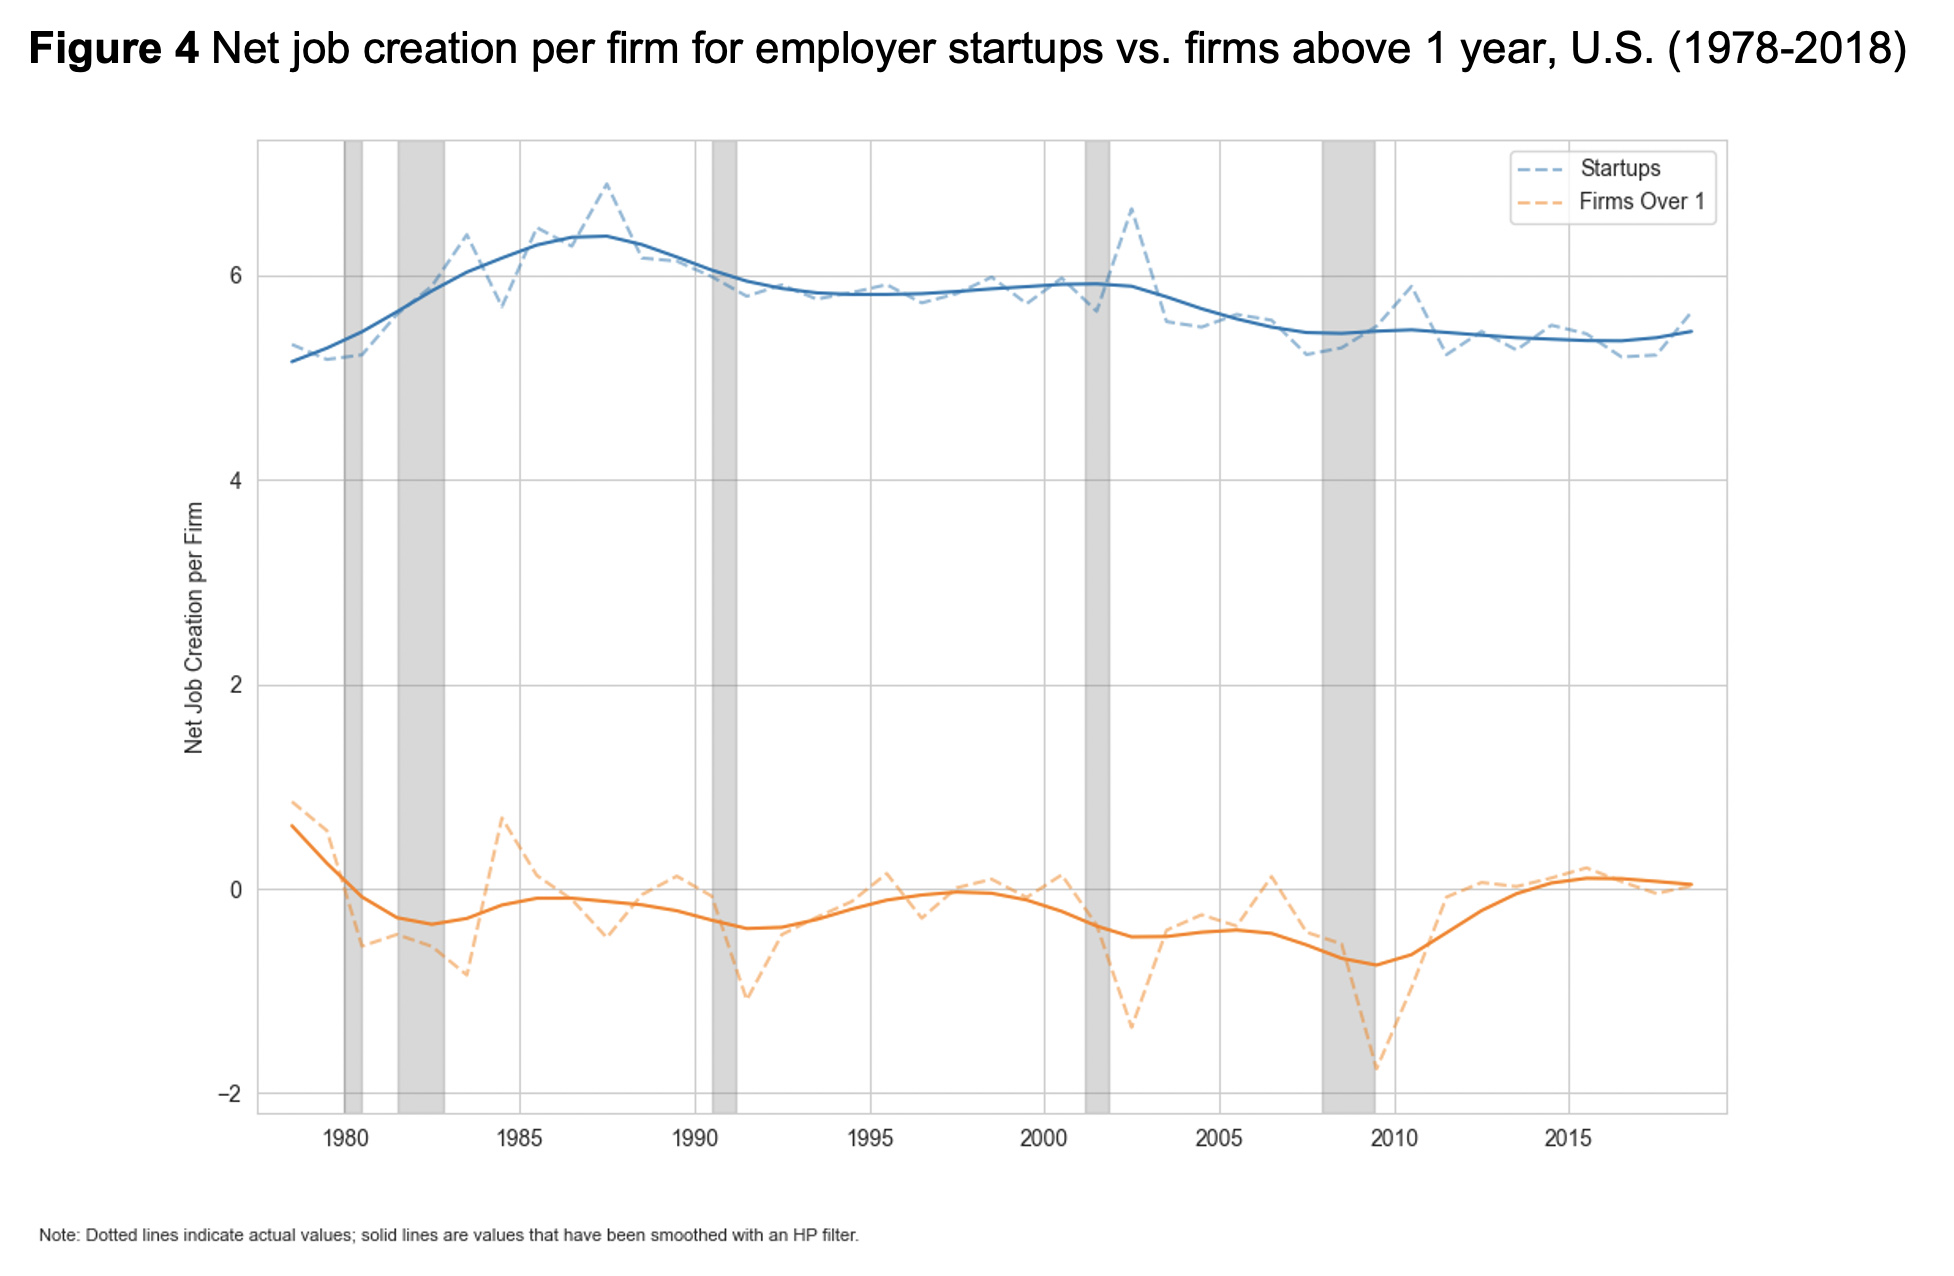 Figure 4: Net job creation per firm for employer startups vs. firms above 1 year, U.S. (1978-2018)